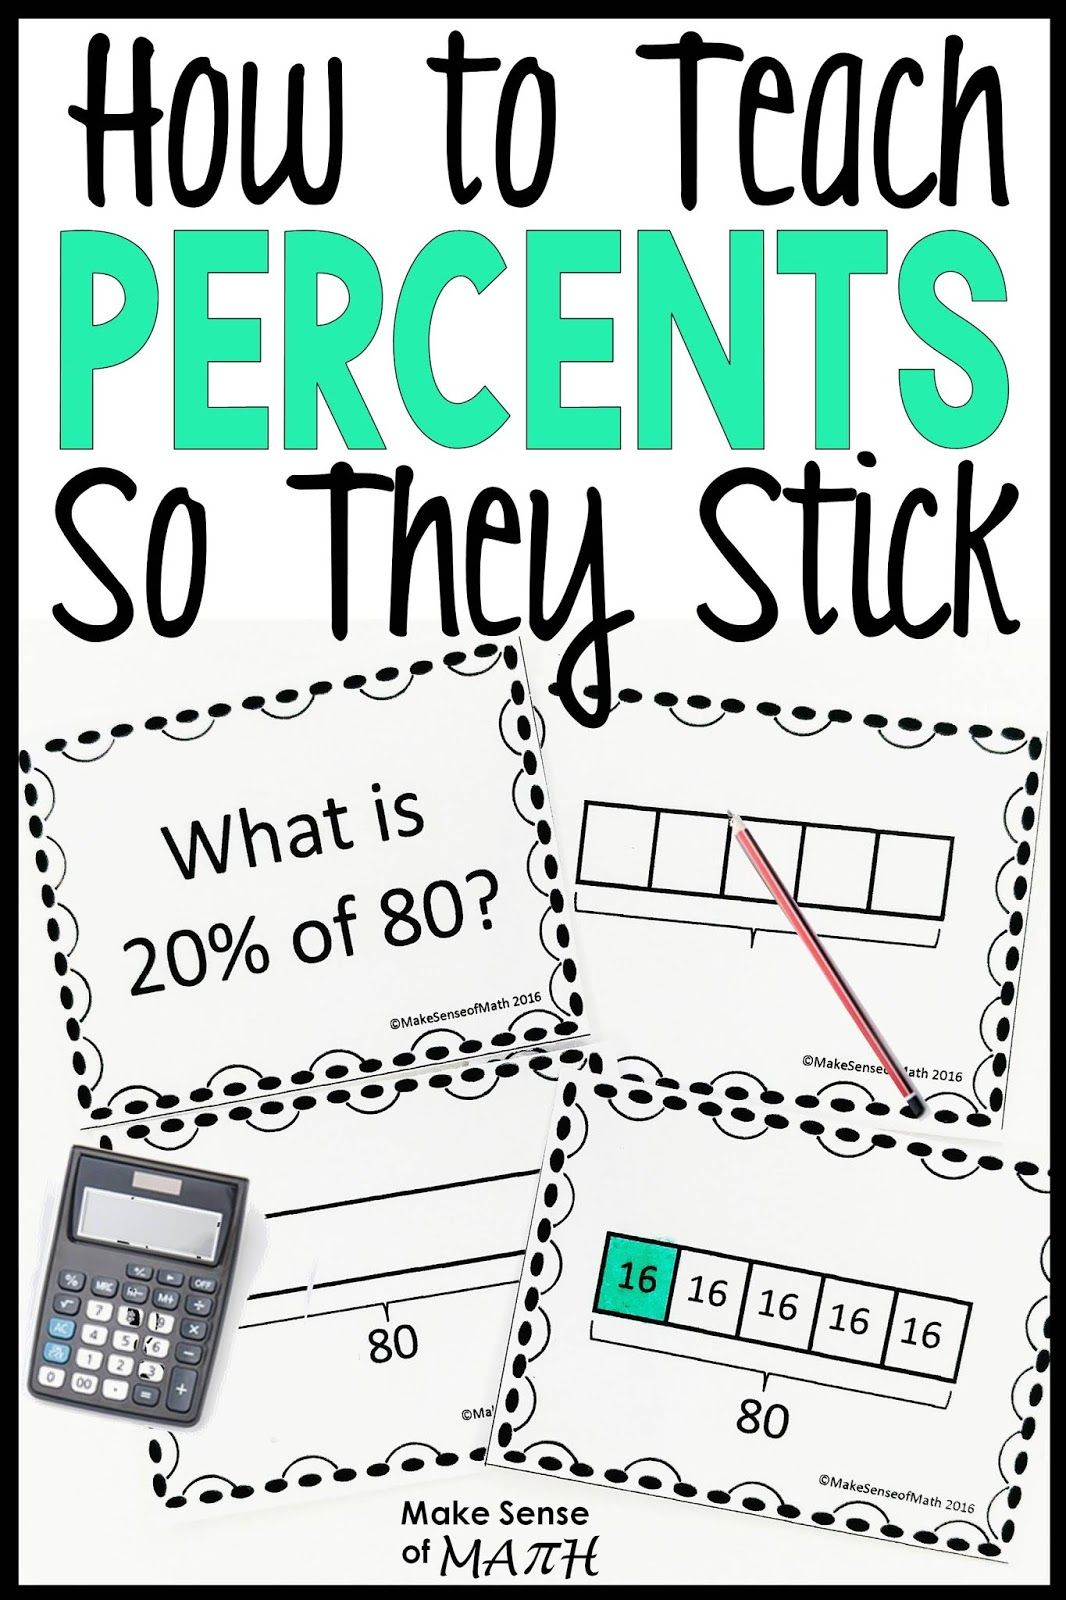 How To Teach Percents So They Stick